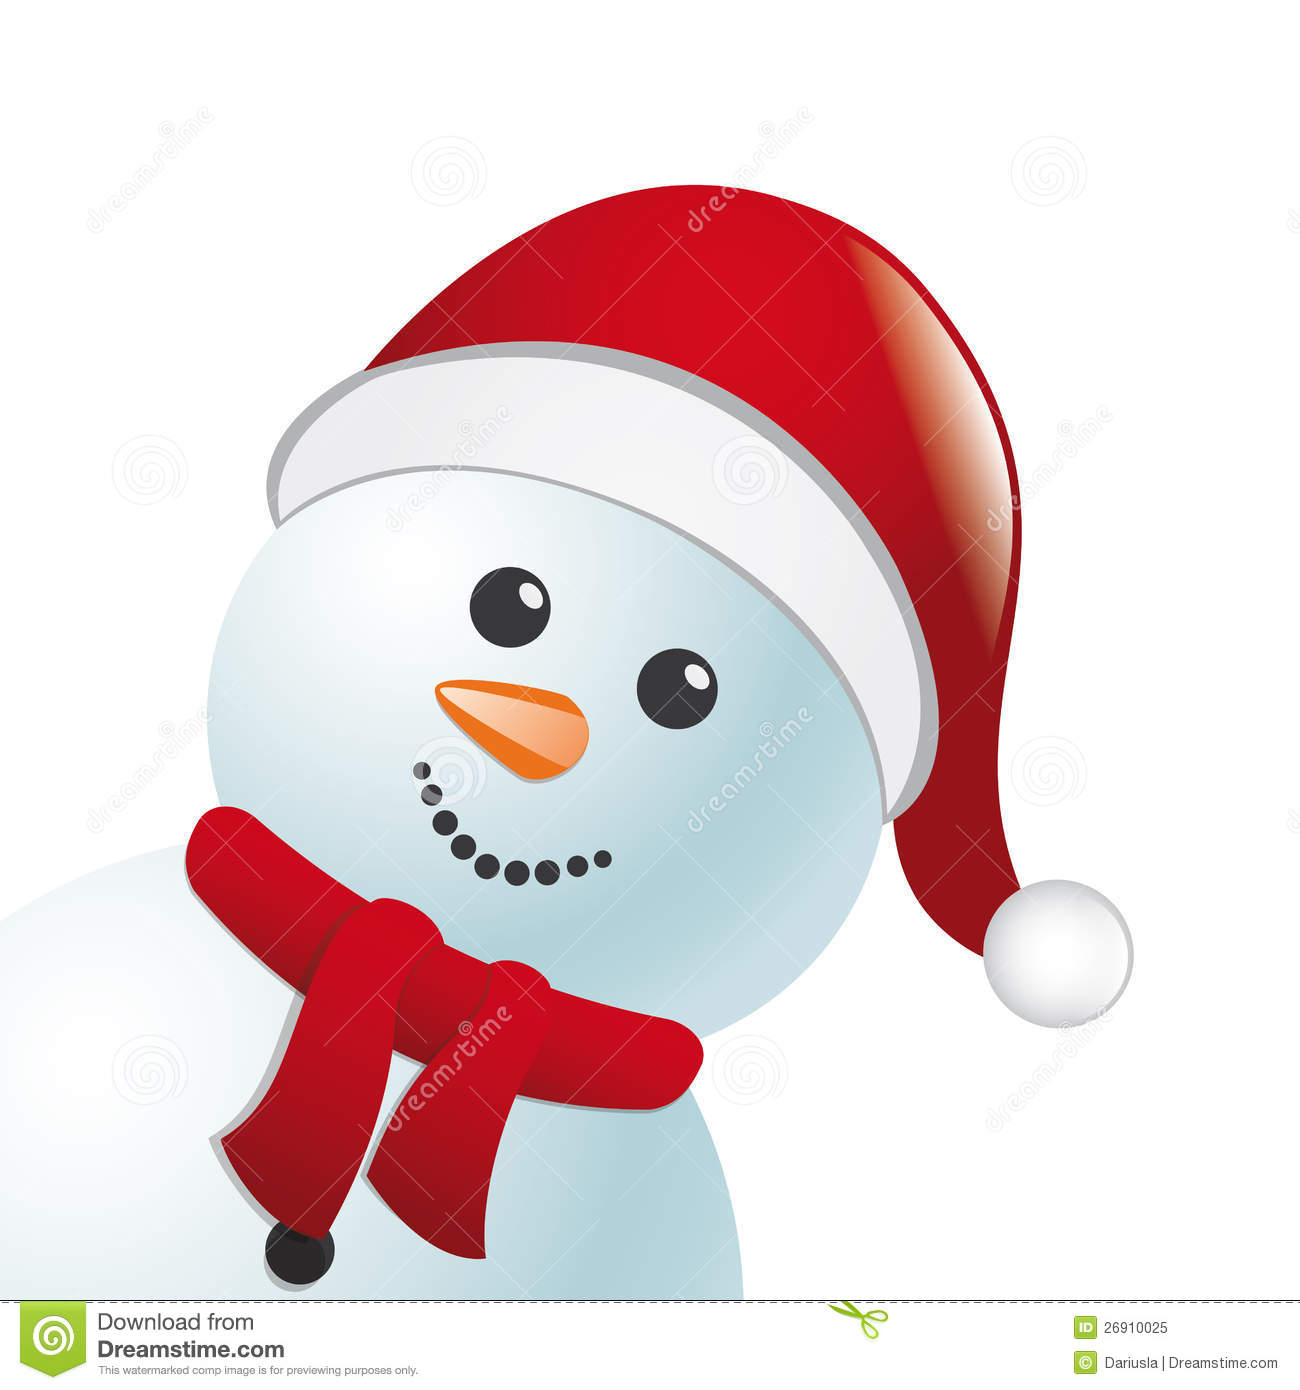 Snowman With Scarf And Hat Royalty Free Stock Photo ...